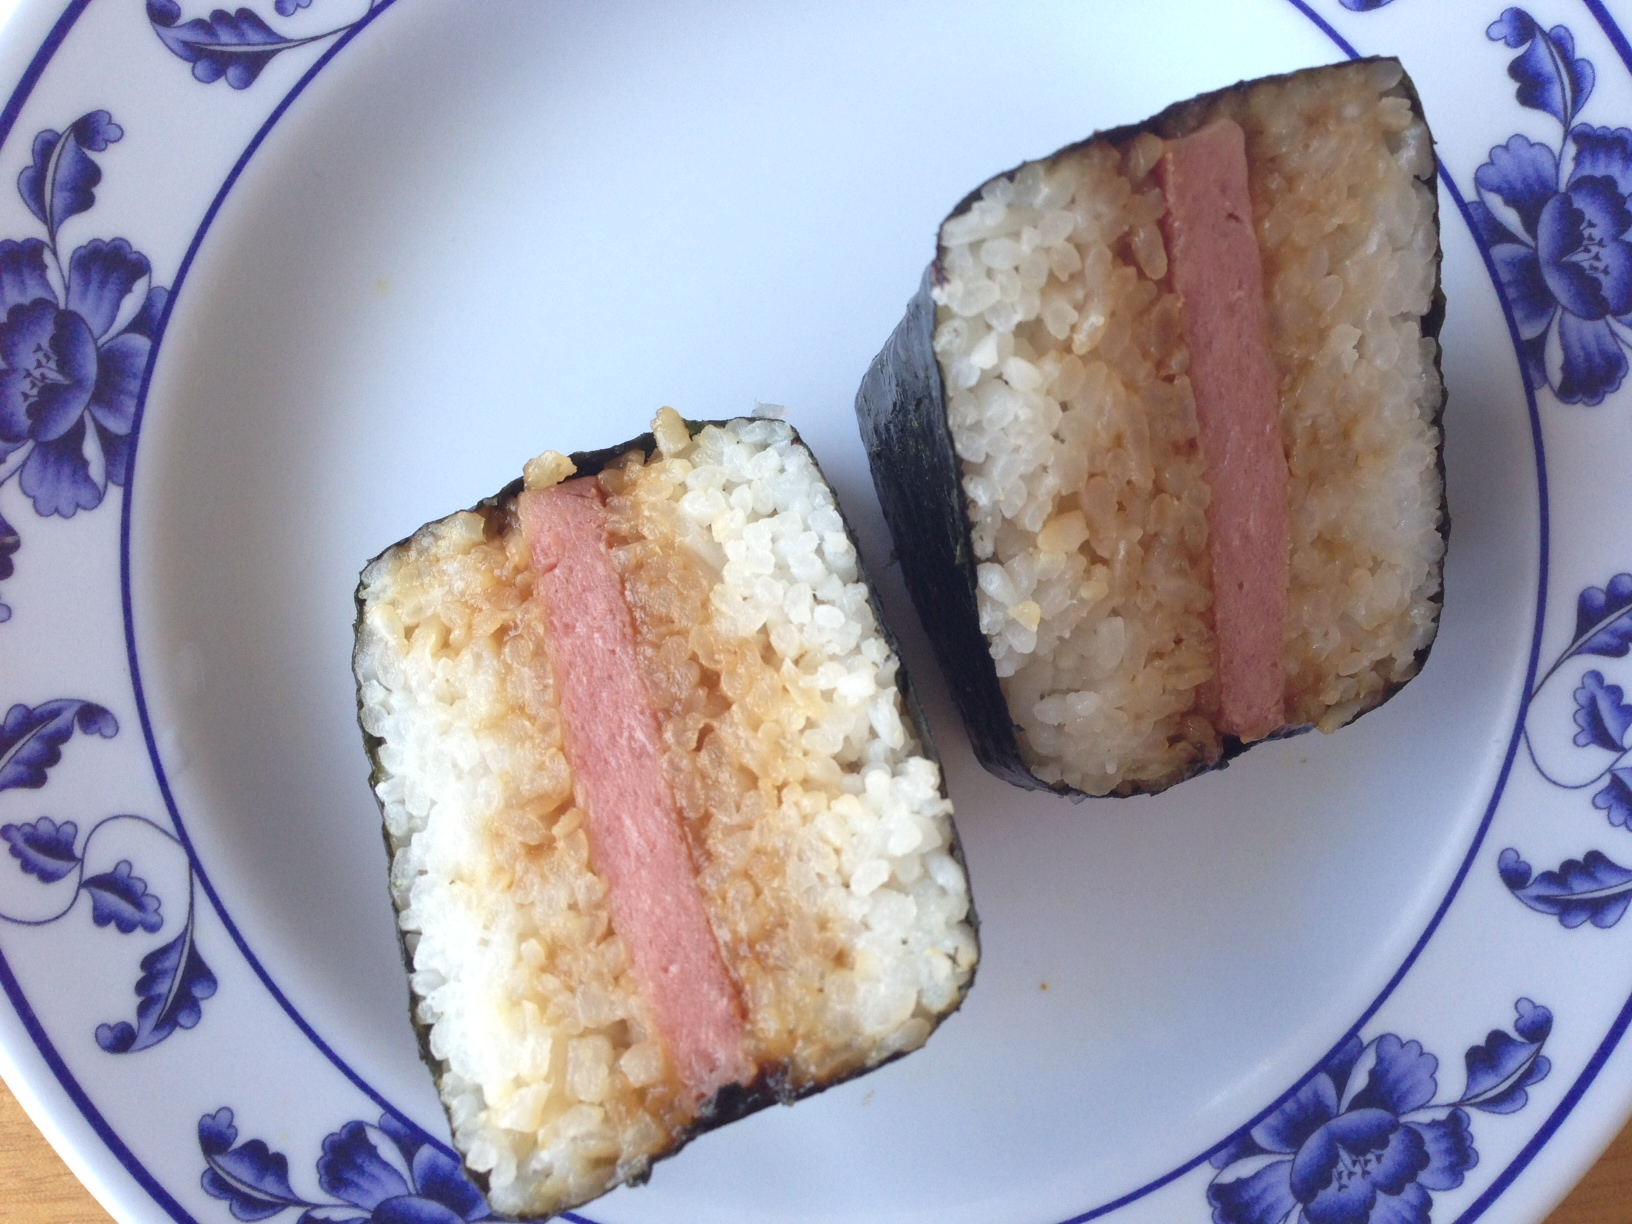 Shockingly, the Spam musubi was not the star of the show